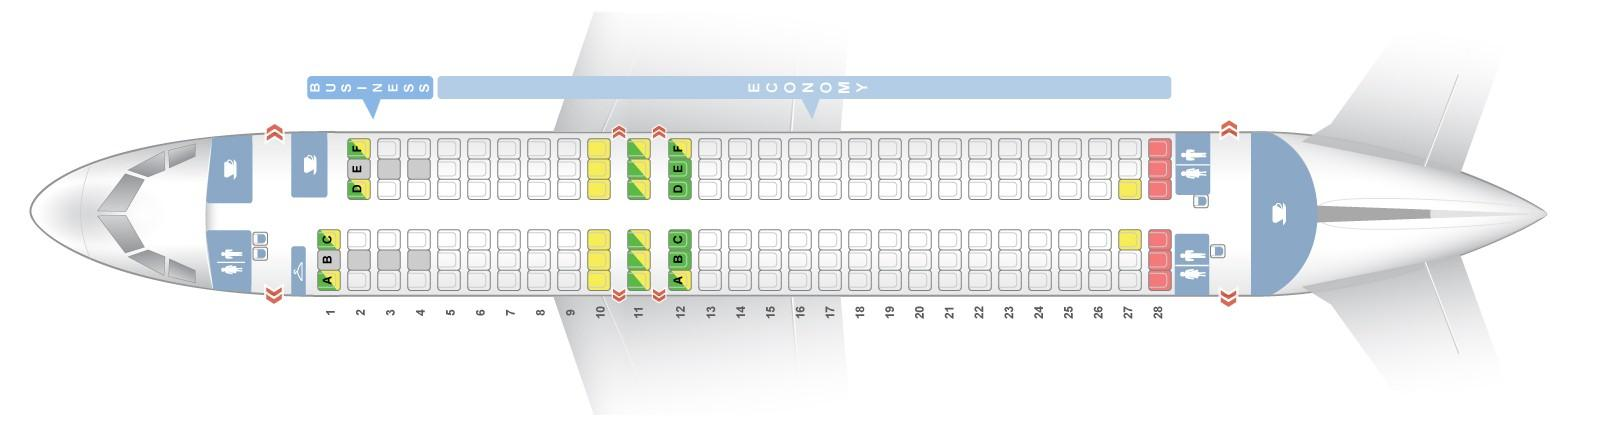 "Seat map Airbus A320-200 ""Finnair"". Best seats in the plane"